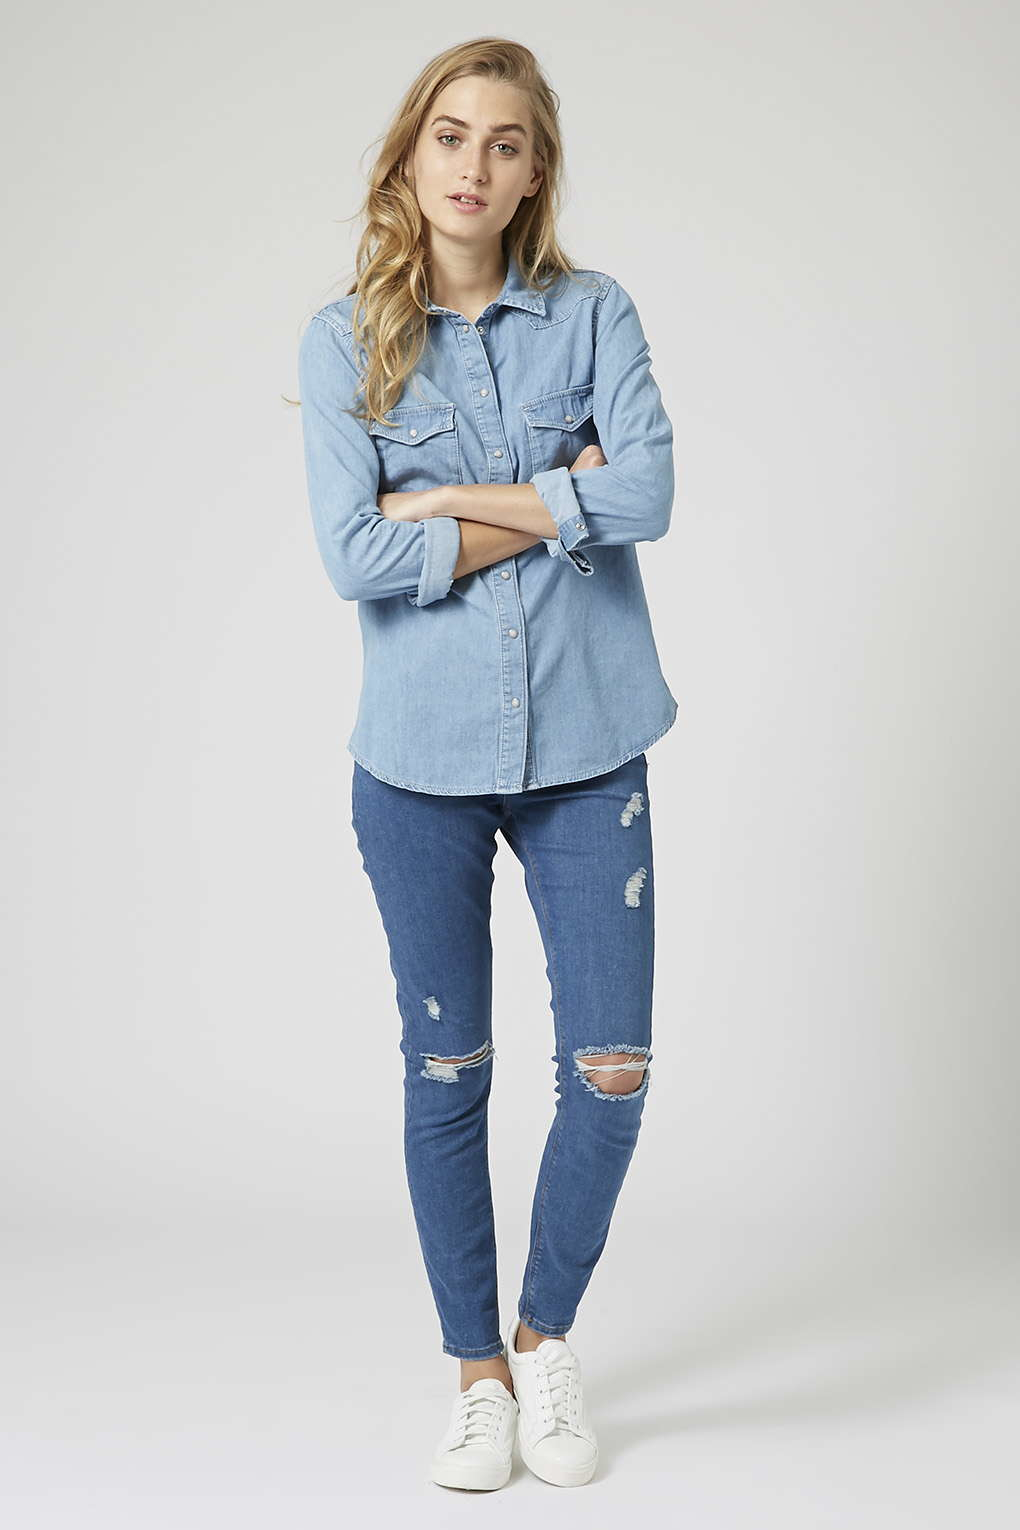 b2a6f211634 Topshop Fitted Denim Shirt – EDGE Engineering and Consulting Limited